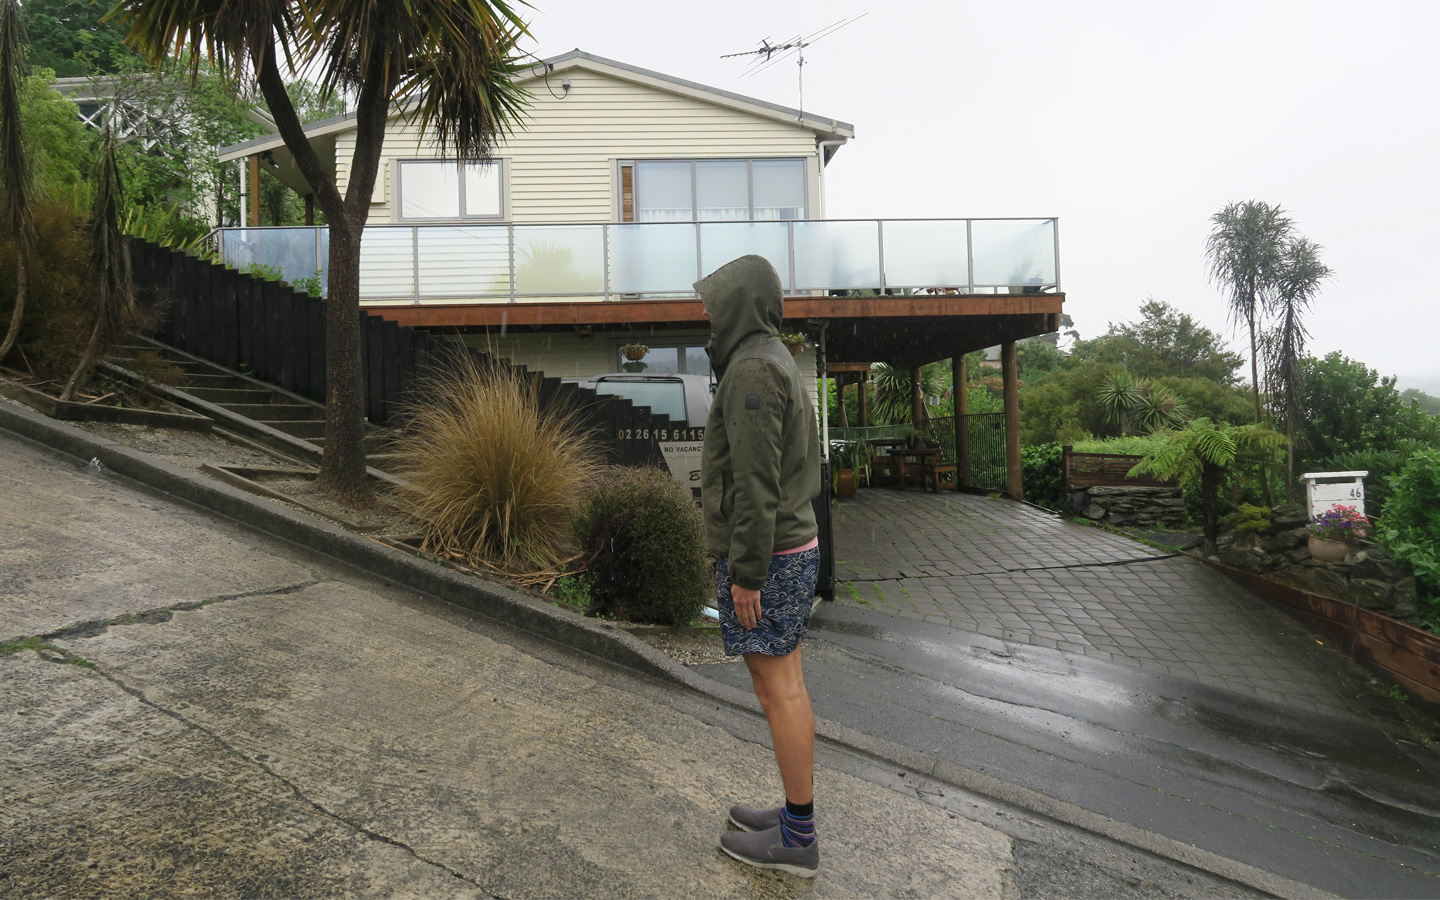 man standing on world's steepest street in dunedin in new zealand